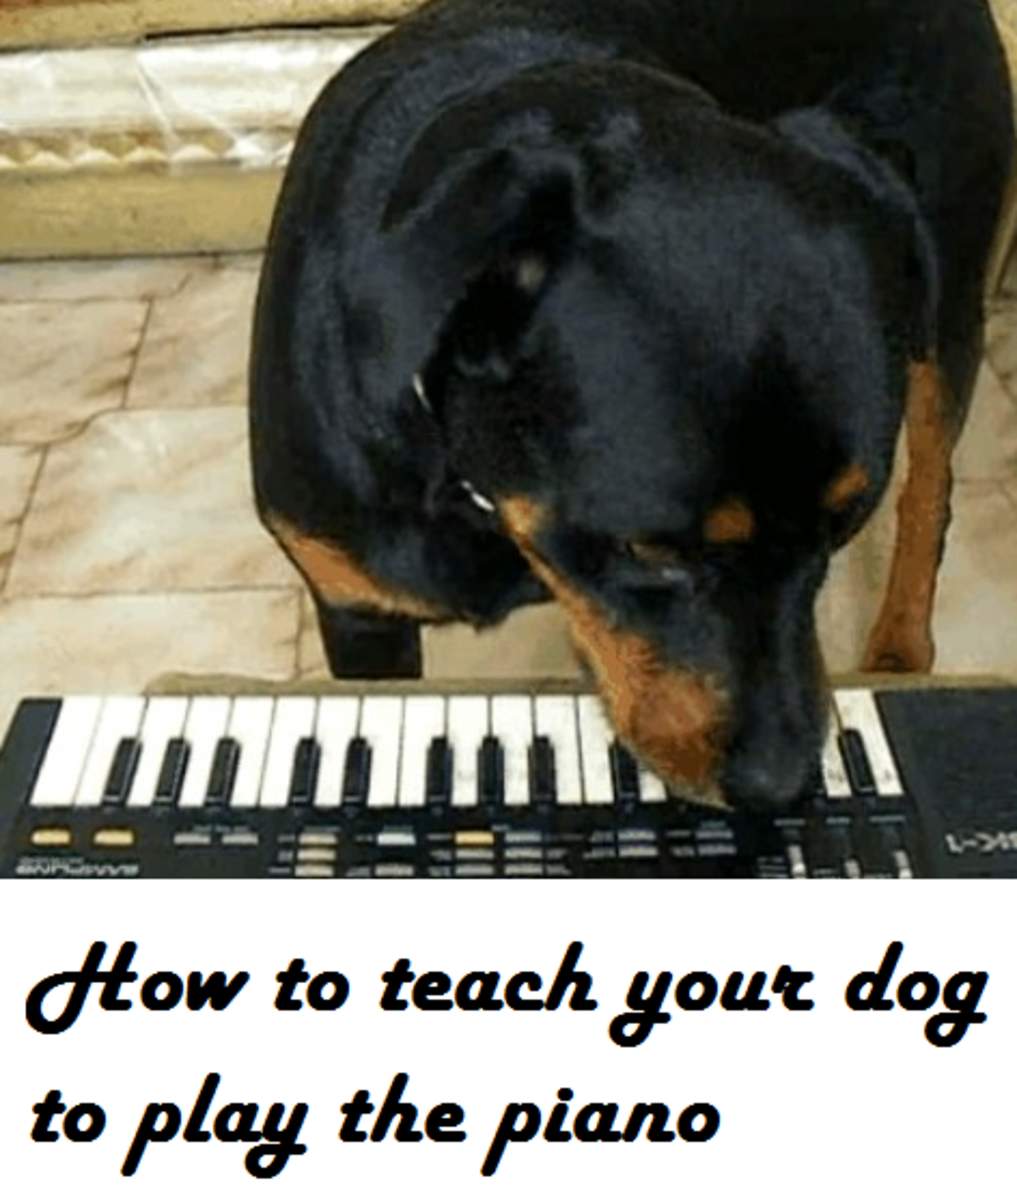 Teach dog to play the piano